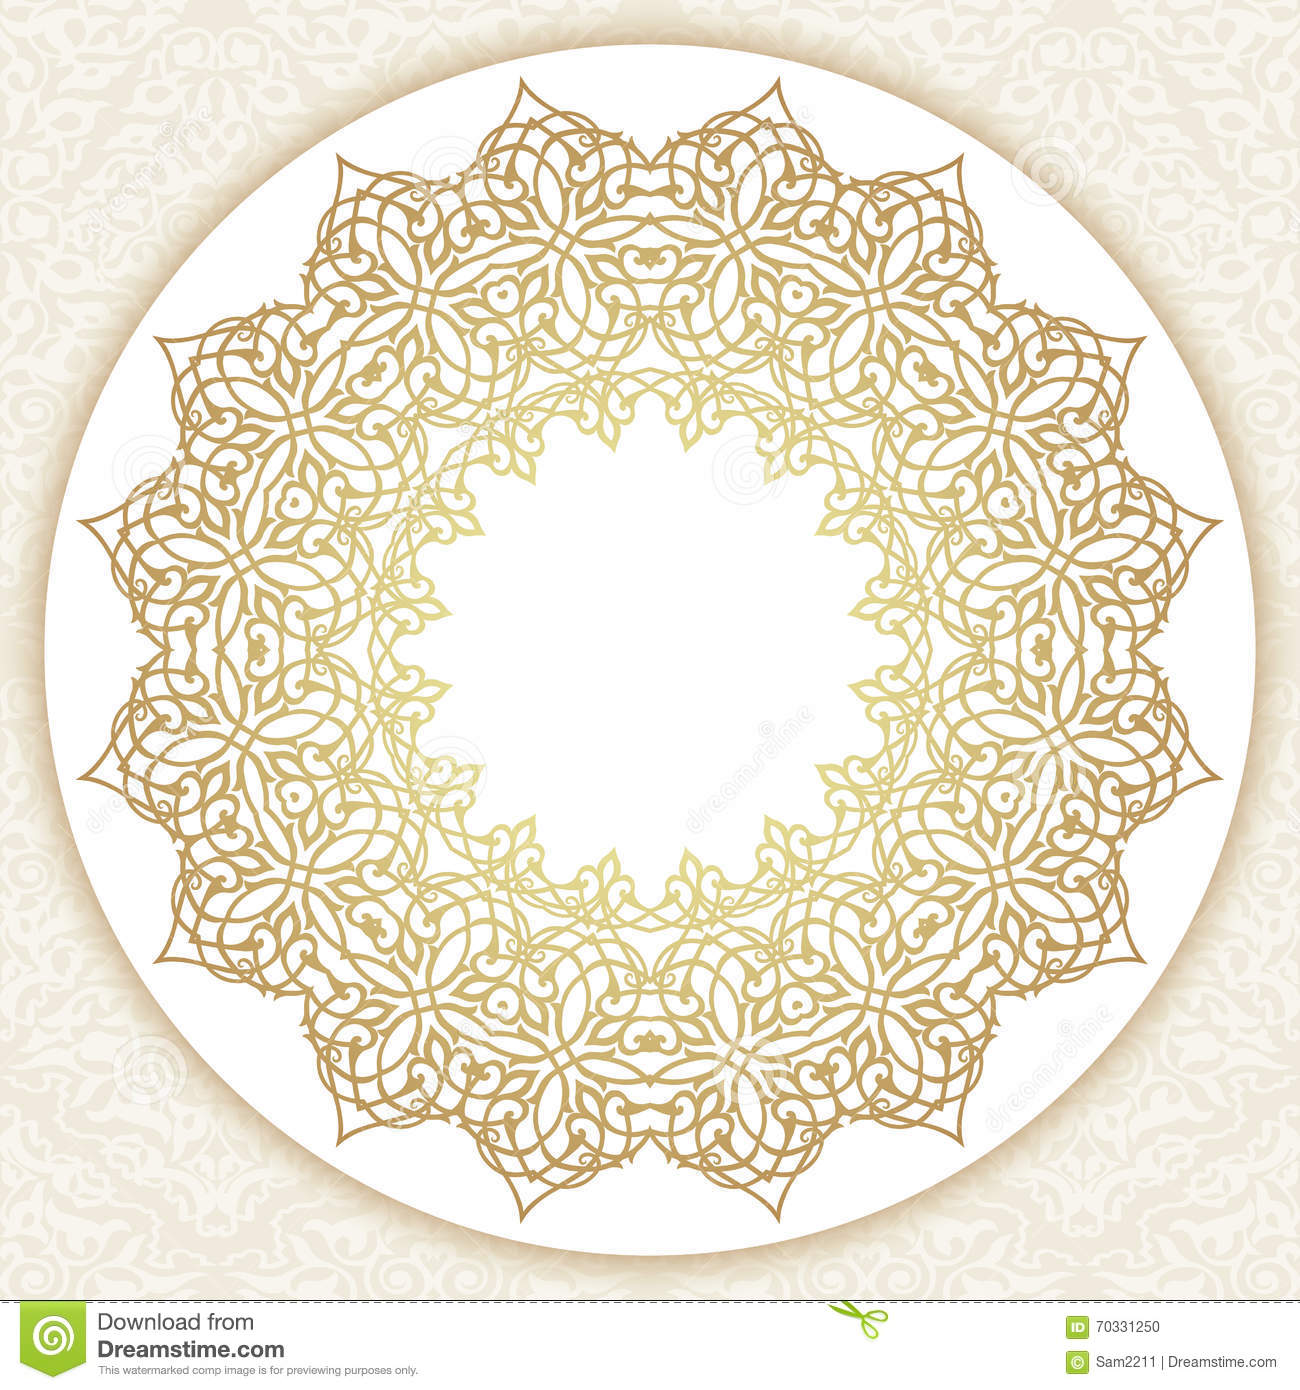 decorative ornate round frame in victorian style  vector illustration